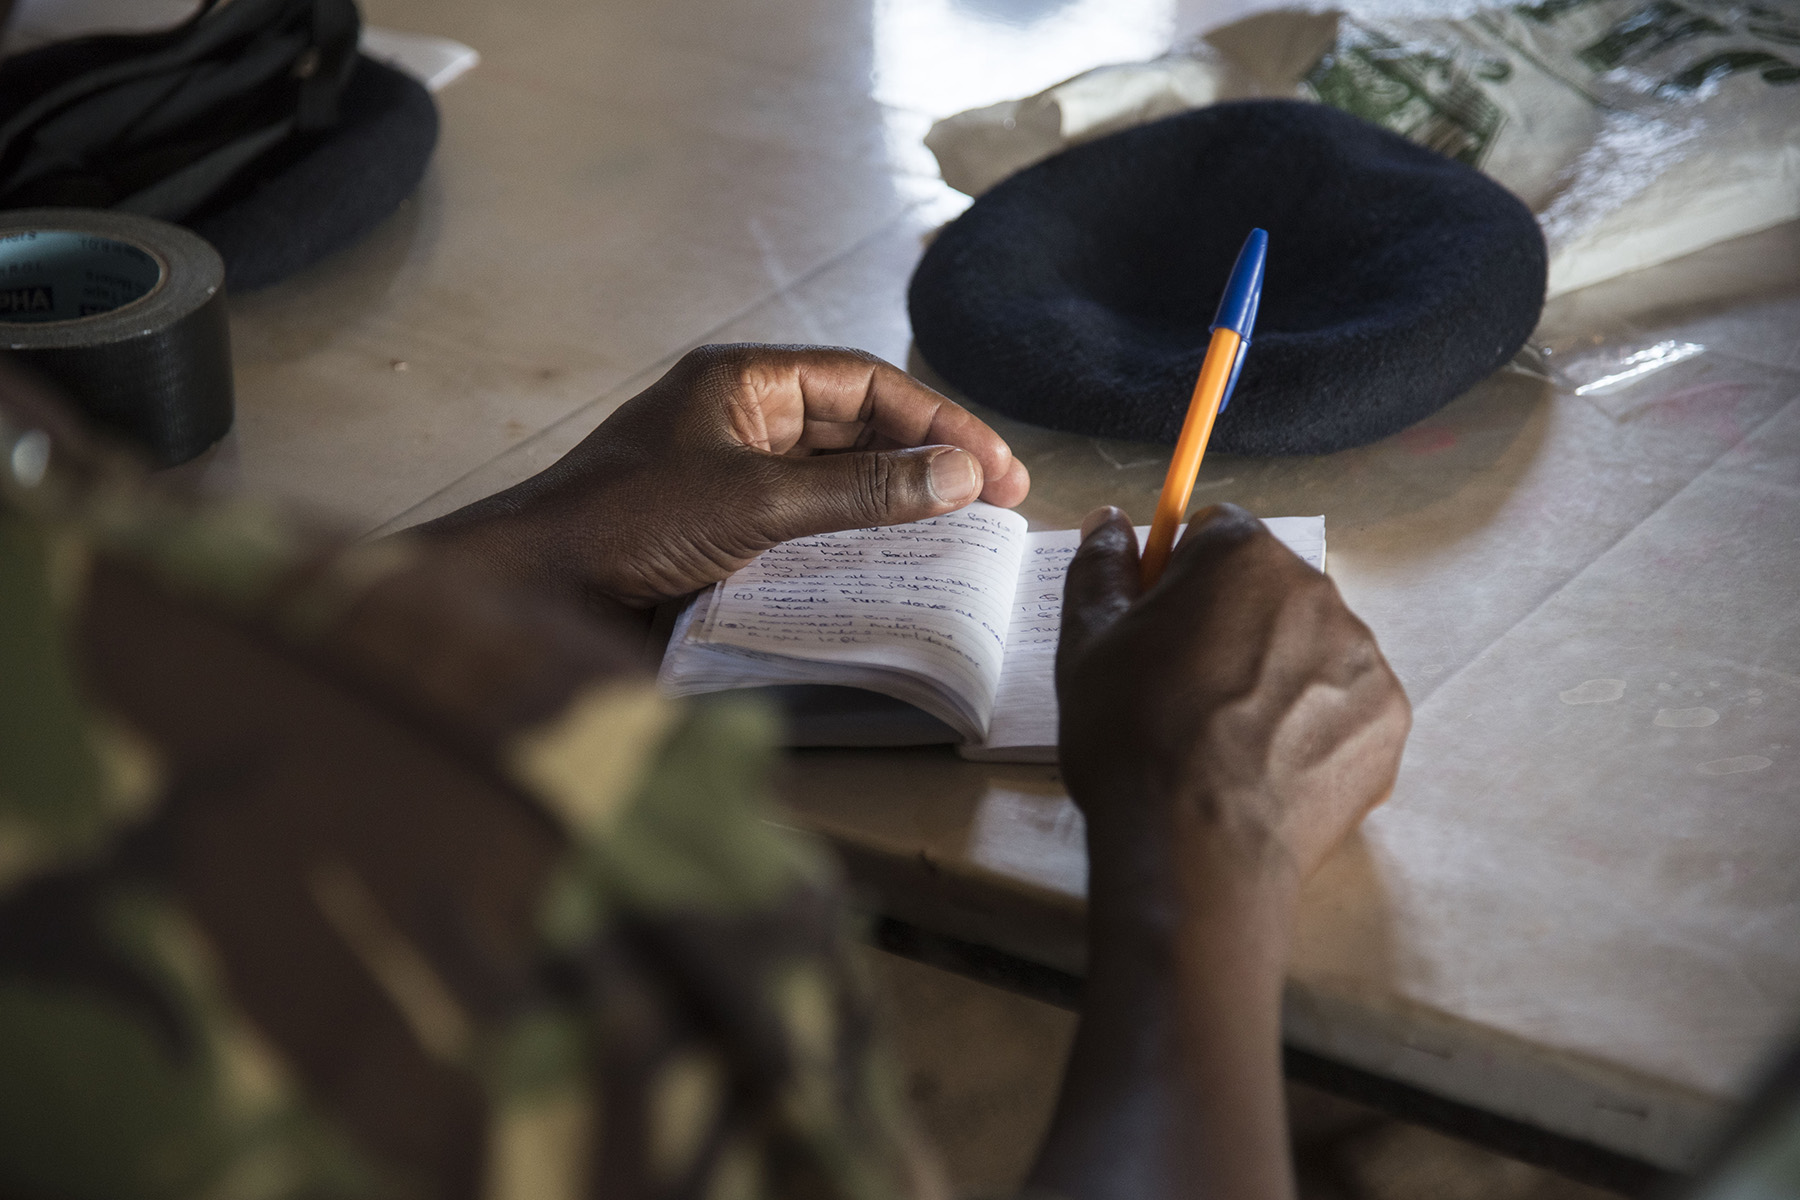 A Kenya Defense Forces Military Intelligence Battalion soldier takes notes during training on the AeroVironment RQ-11 Raven, an unmanned aerial vehicle,  Sept. 13, 2016, at a Kenyan training facility. Members of the 1st Battalion, 124th Infantry Regiment, assigned to Combined Joint Task Force-Horn of Africa, provided the KDF training on the Raven for employment in future real world situations. (U.S. Air Force photo by Staff Sgt. Tiffany DeNault)